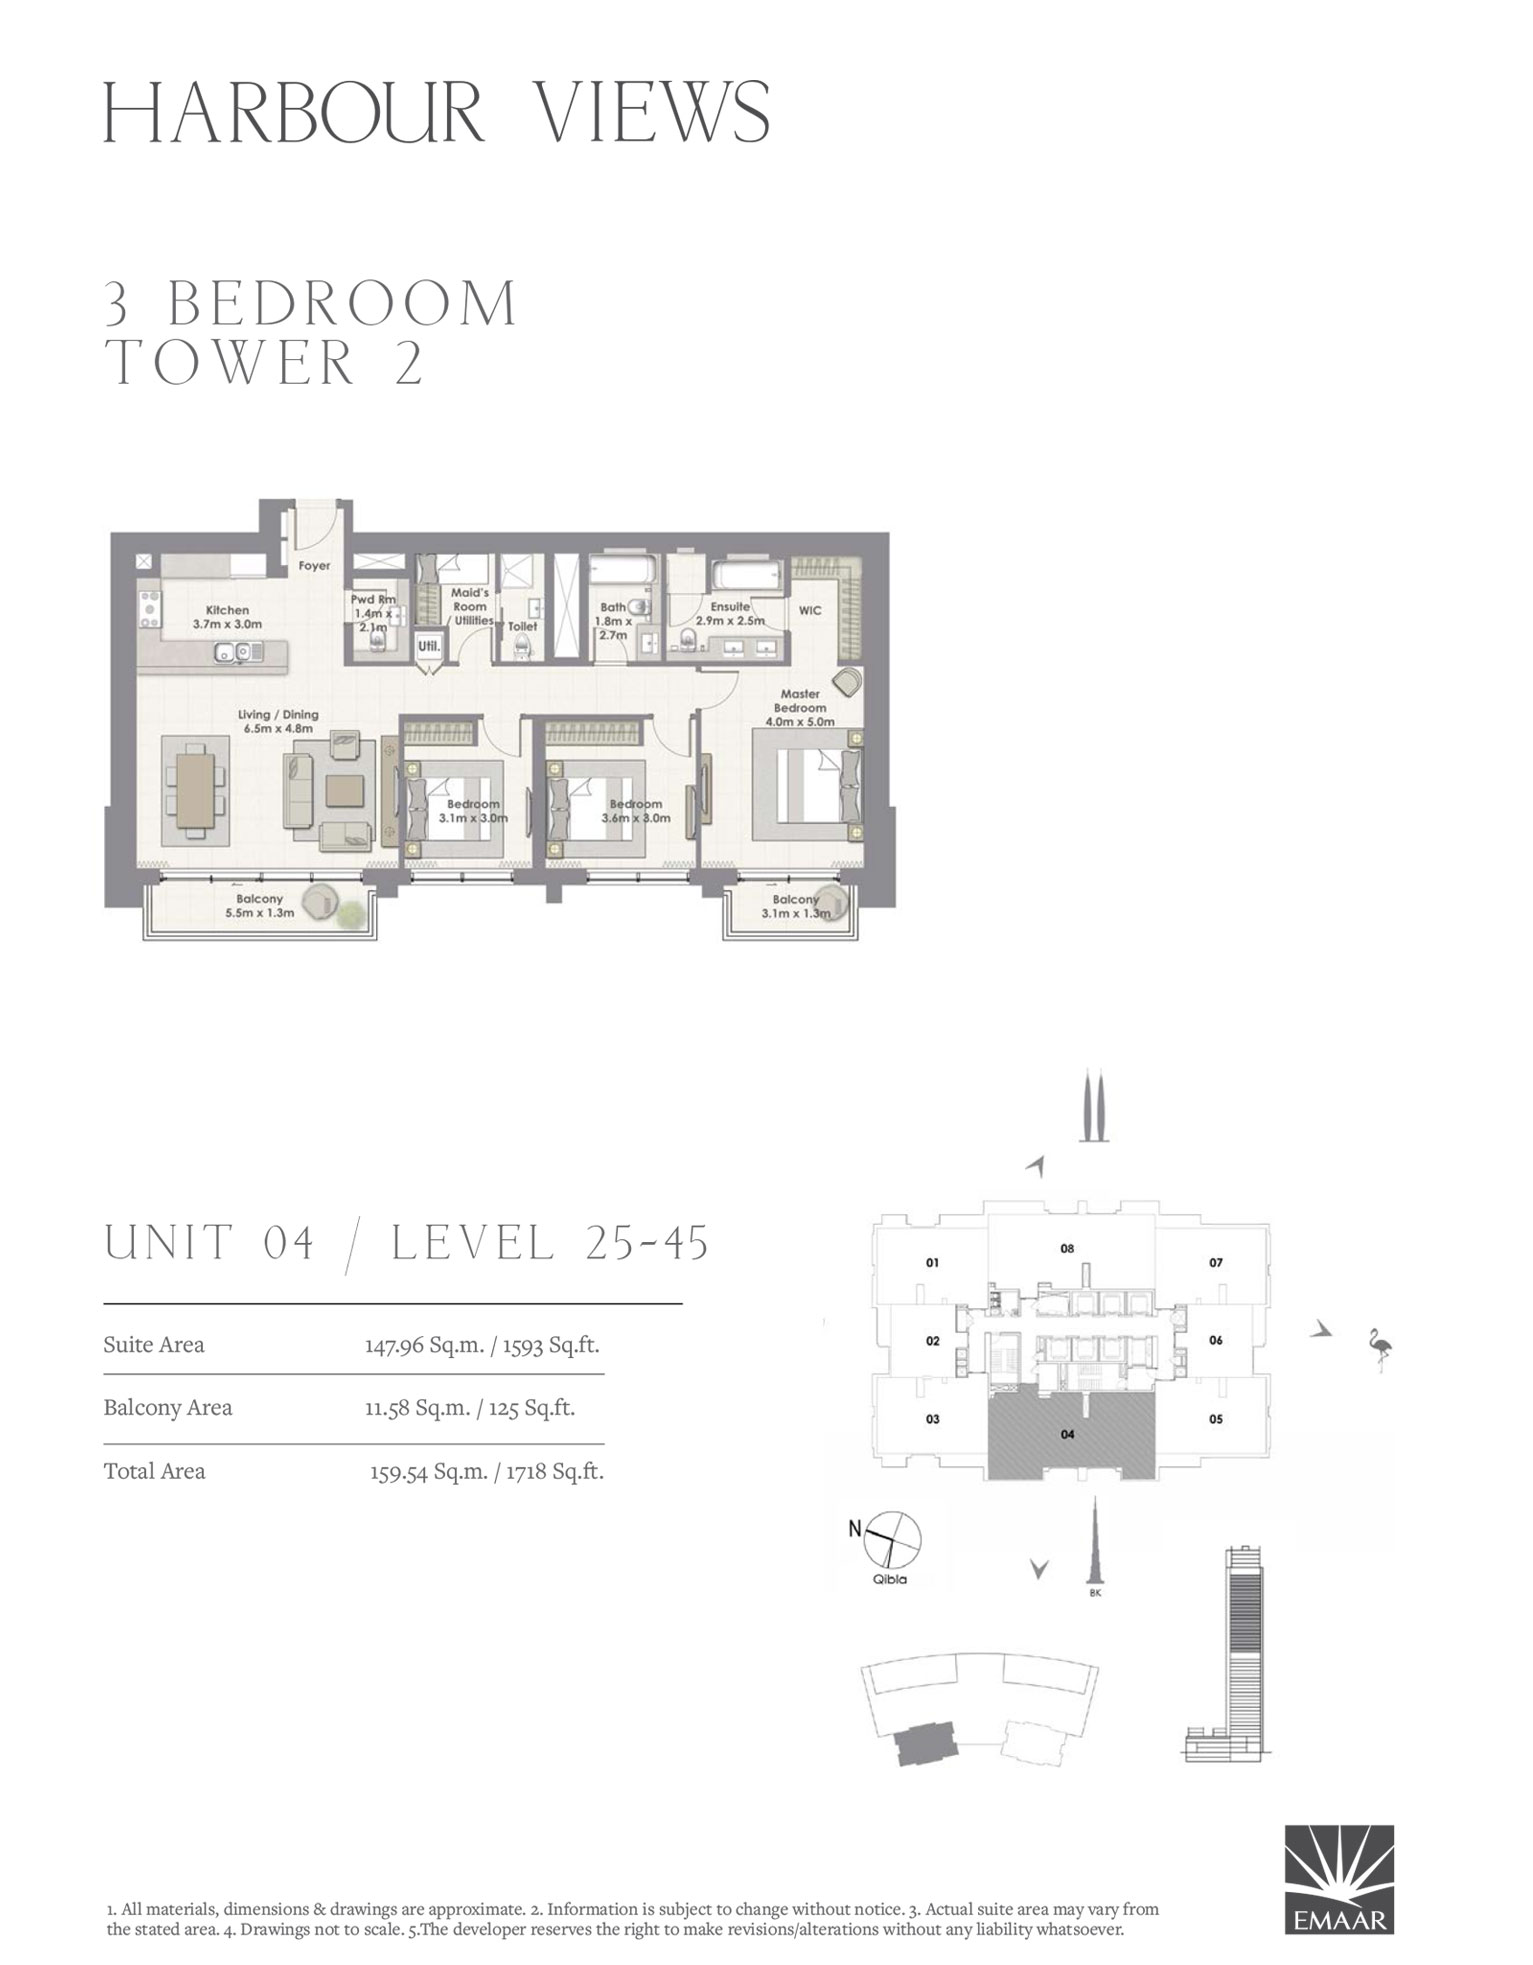 3 Bedroom Tower 2, Unit 04/Level 25-45